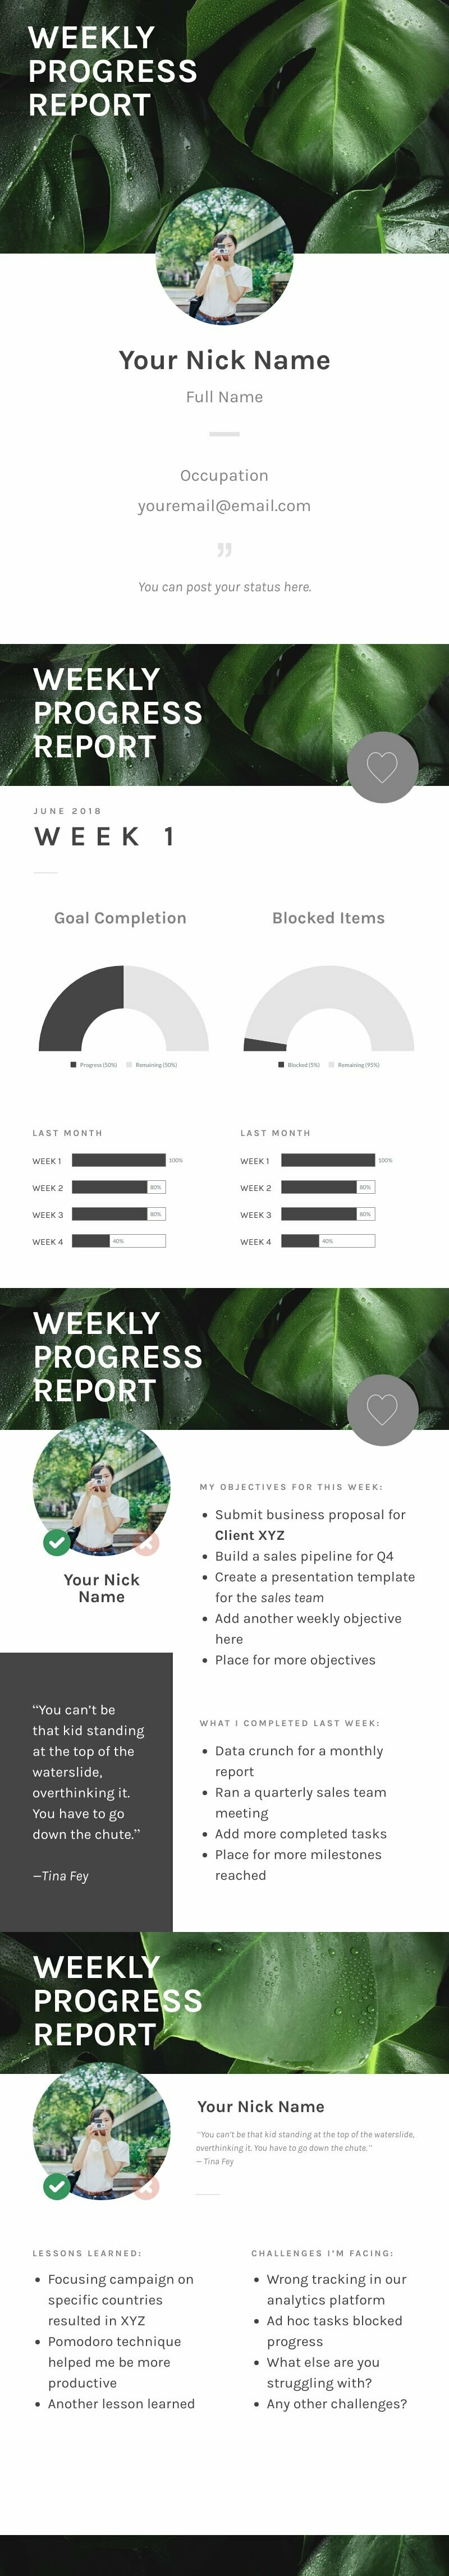 Weekly Progress Report